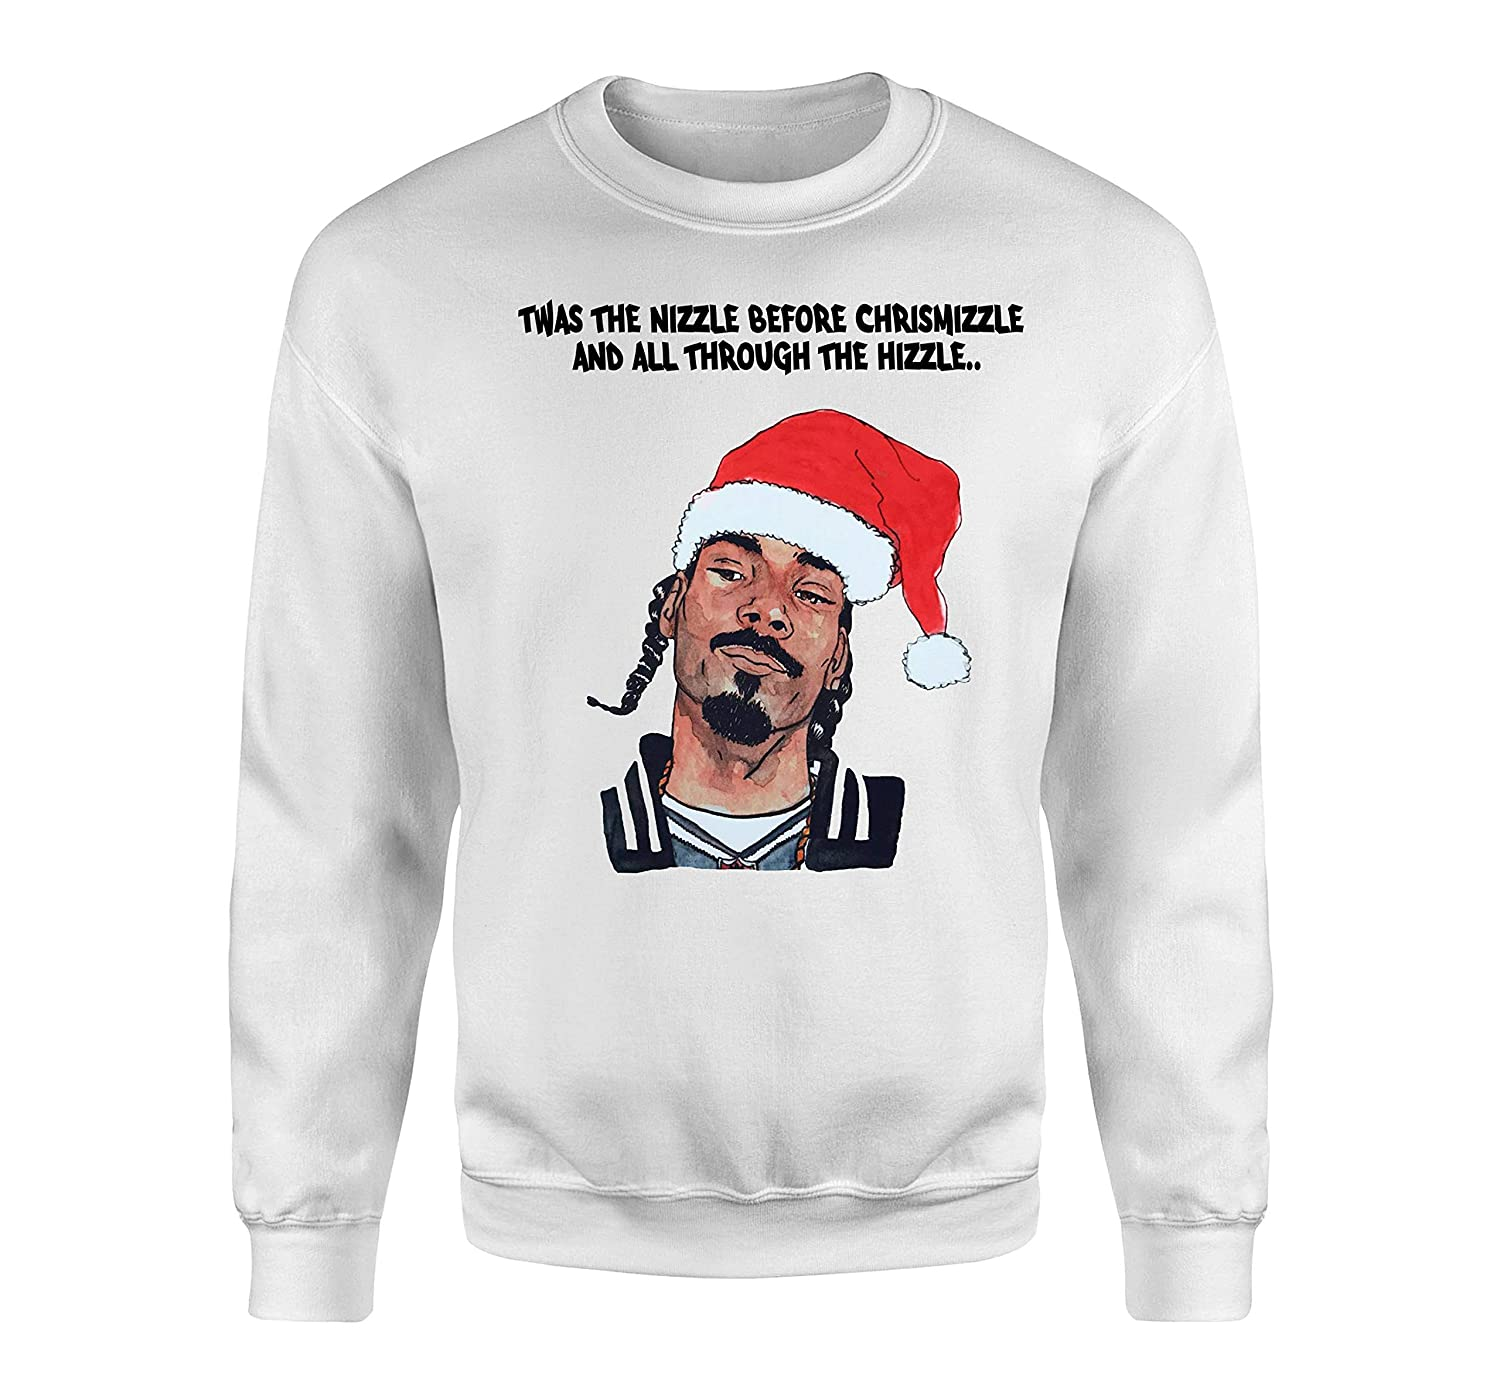 Snoop Dogg Christmas.Snoop Dogg Christmas Twas The Nizzle Before Chrismizzle And All Through The Hizzle Sweater And Tshirt Snoop Fun Rap Ugly Sweater Funny Christmas